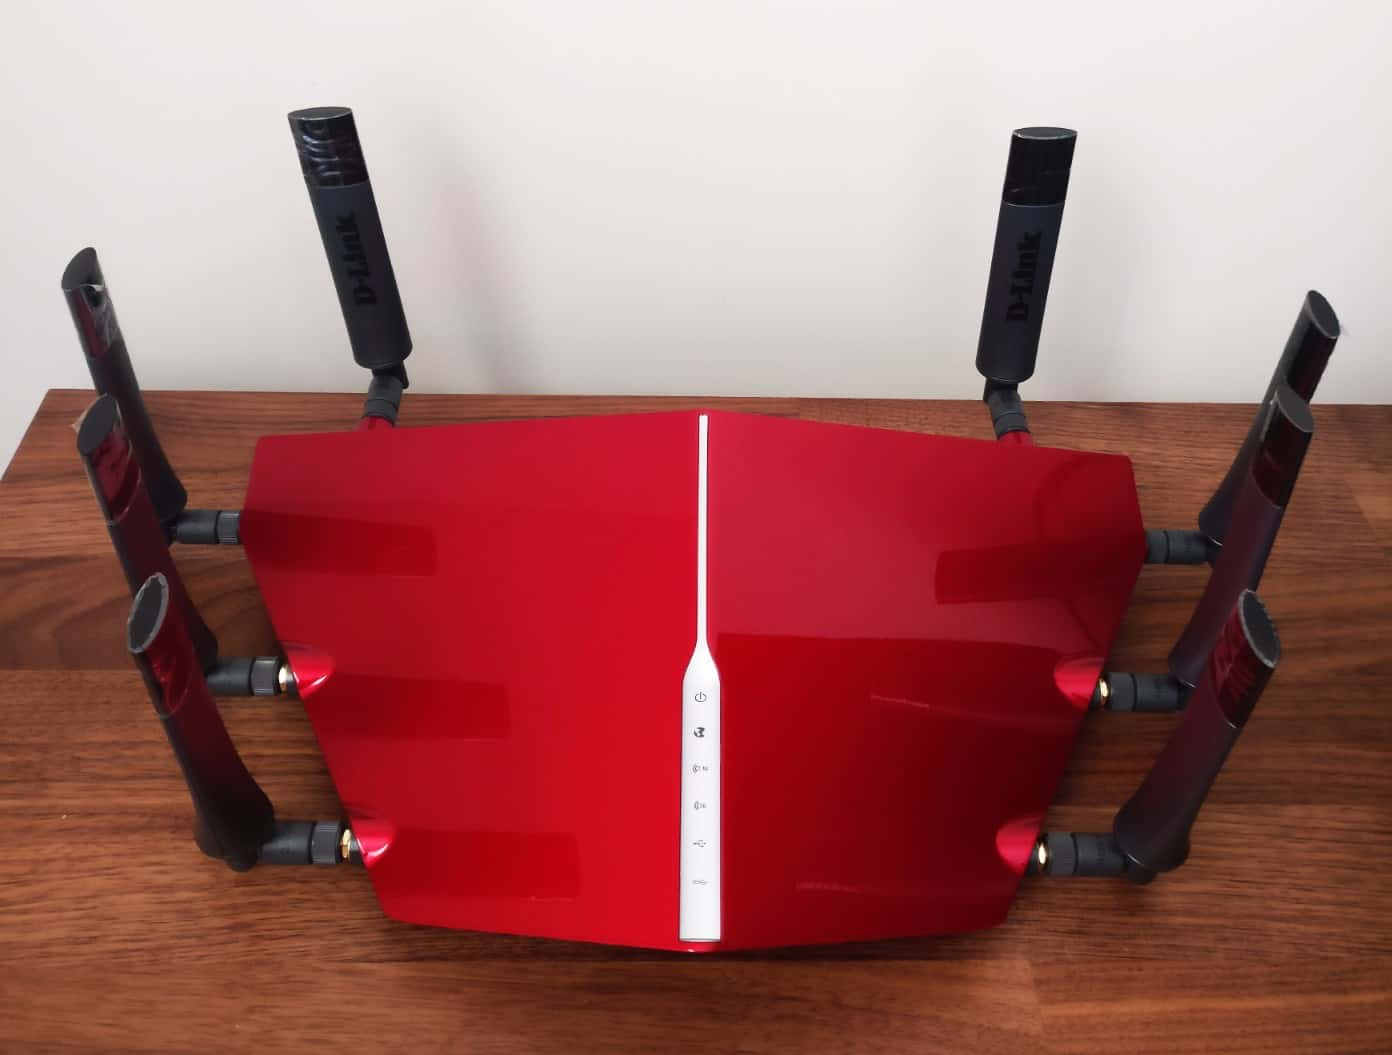 dlink-router-photos-02 D-Link DIR-895L AC5300 MU-MIMO Wi-Fi Router Review